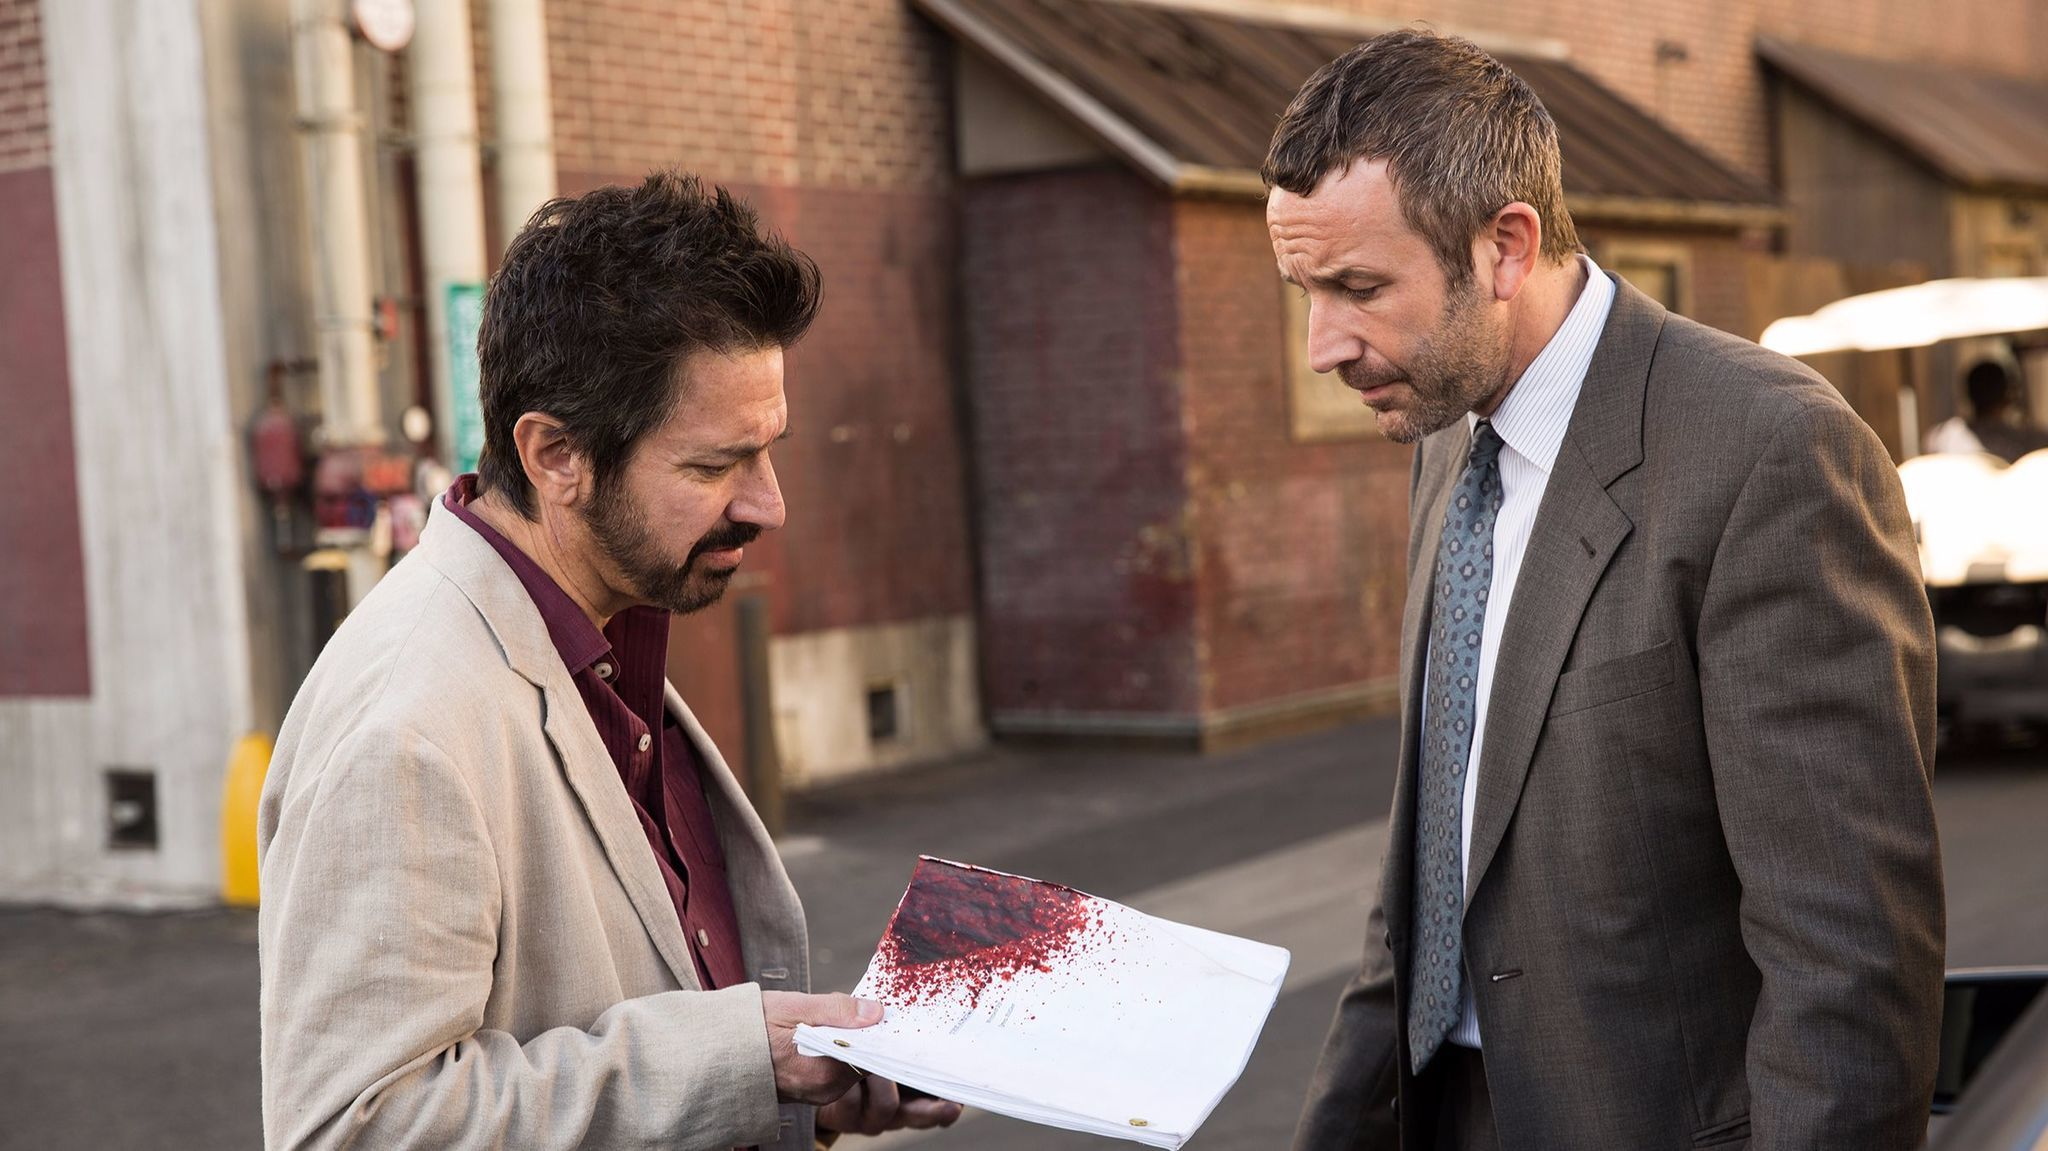 Ray Romano as Rick and Chris O'Dowd as Miles in the Epix series